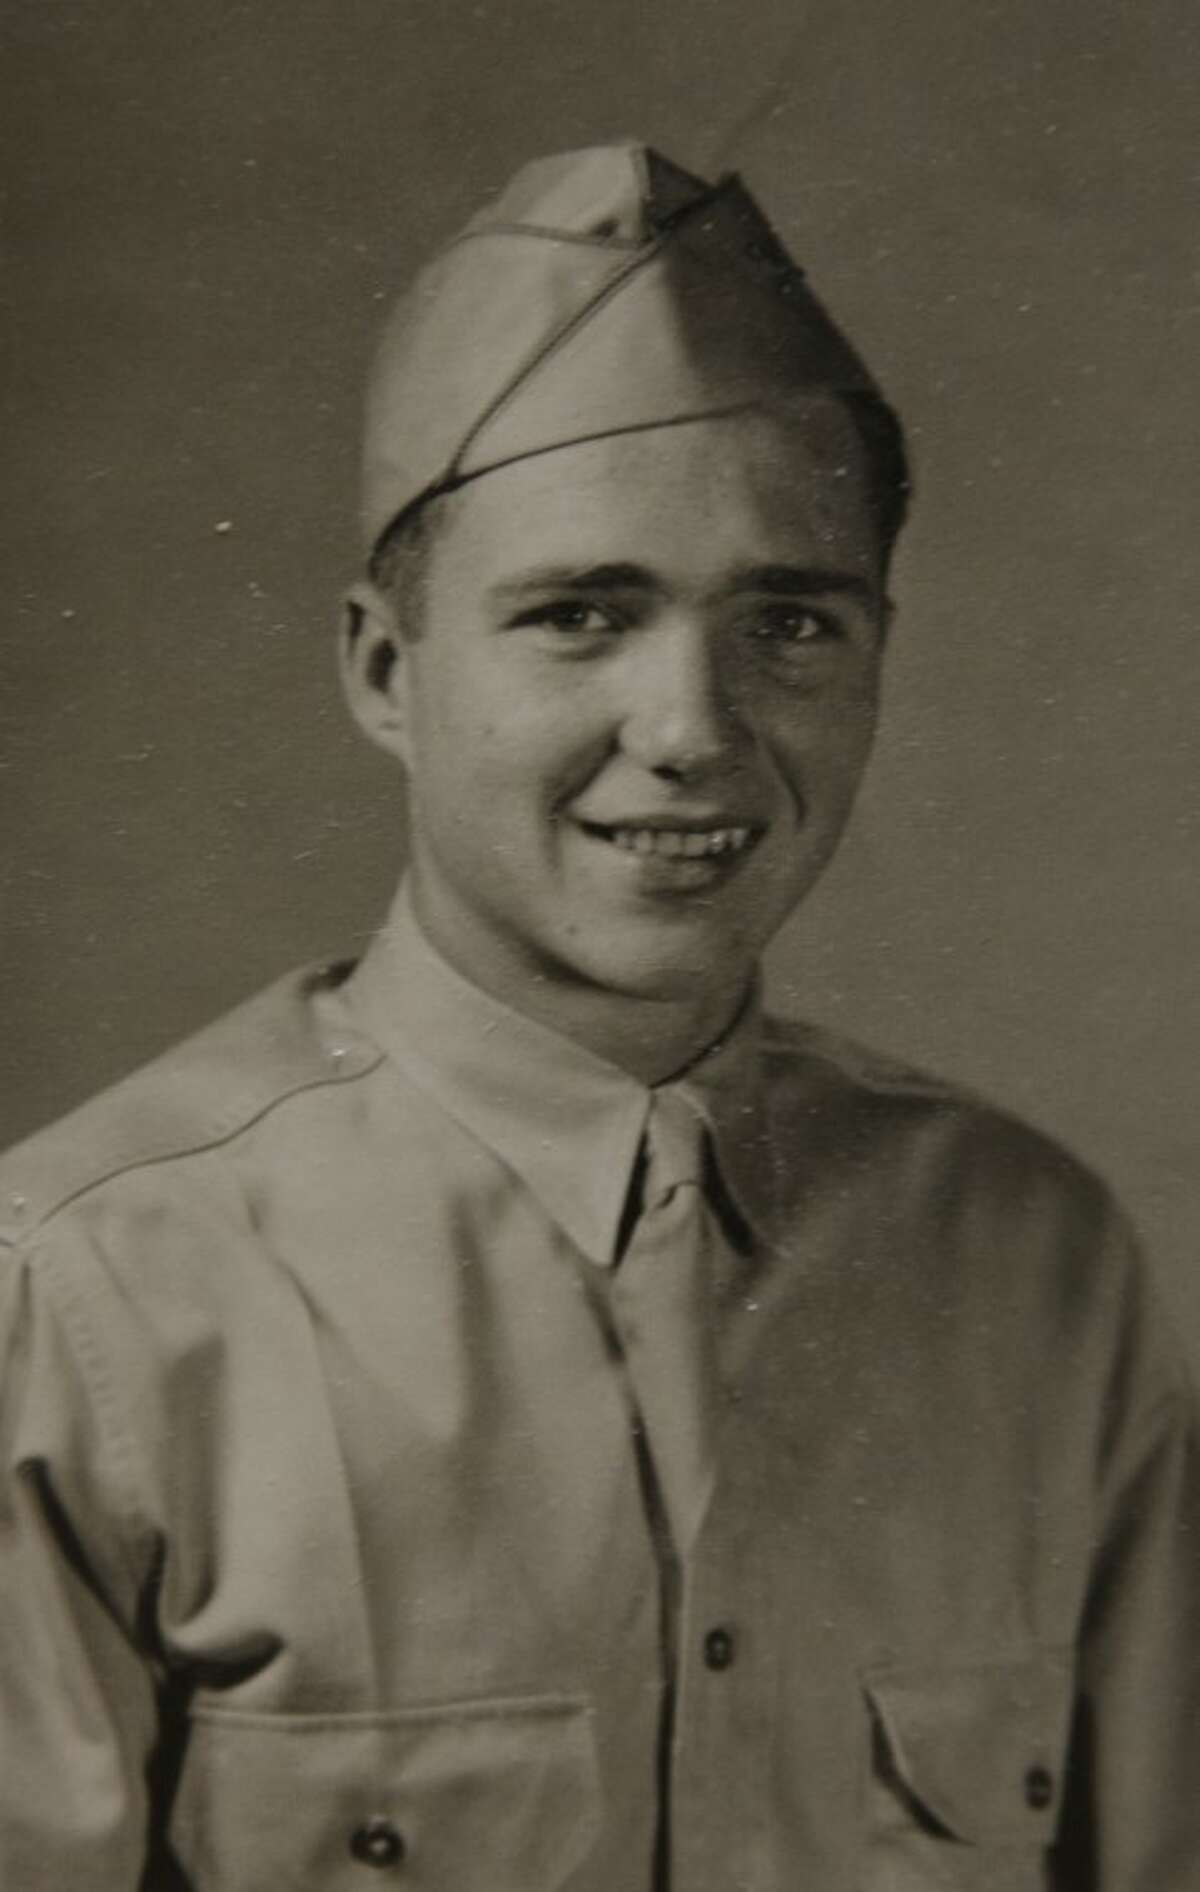 Donald Troy in 1940 when he enlisted in the US Army. Photo by Tim Fischer/Midland Reporter-Telegram